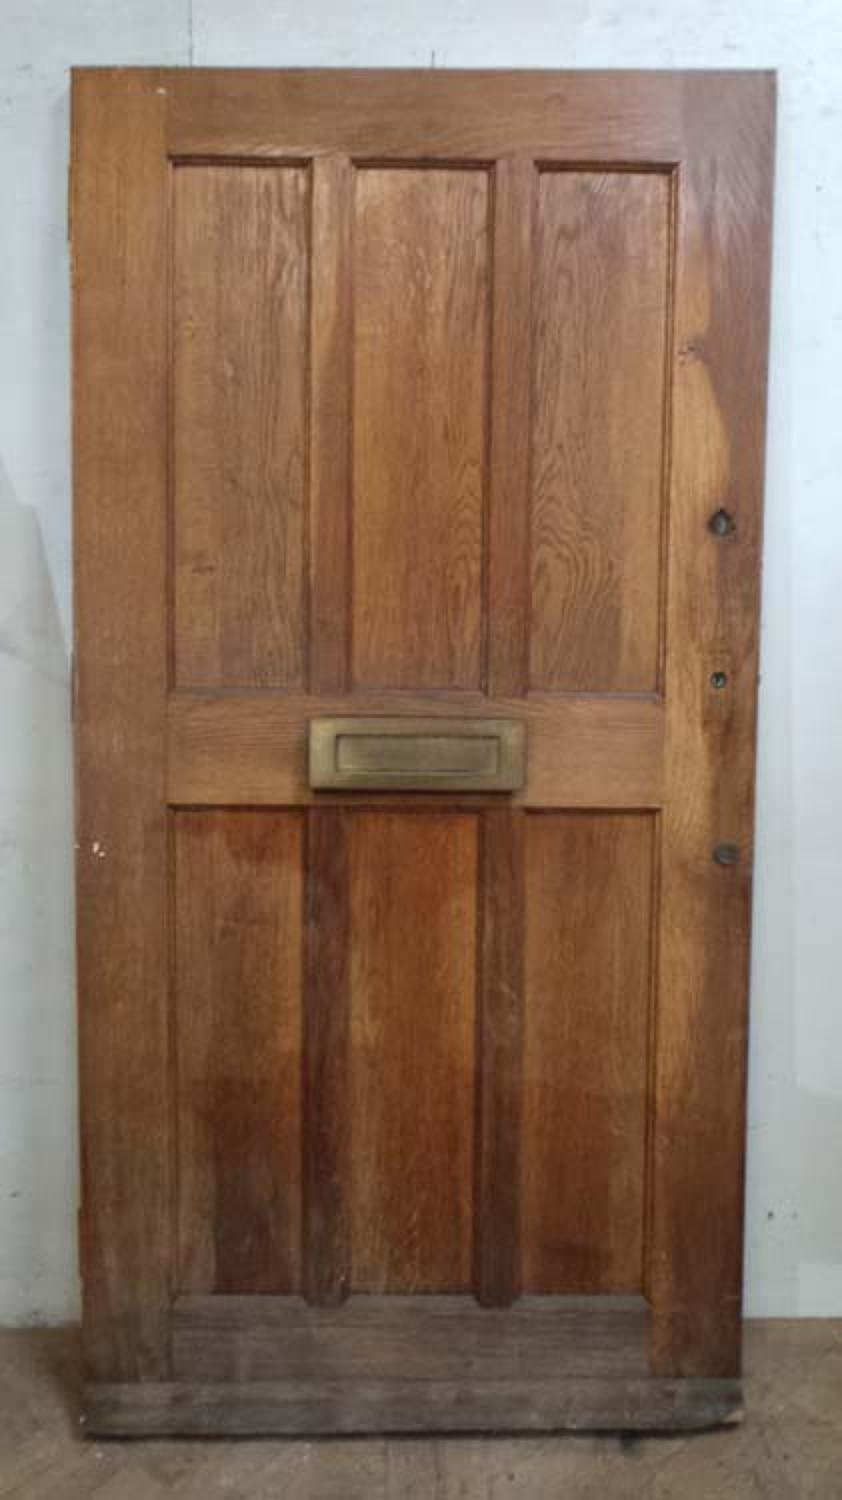 DE0637 AN EDWARDIAN STYLE ENGLISH OAK DOOR